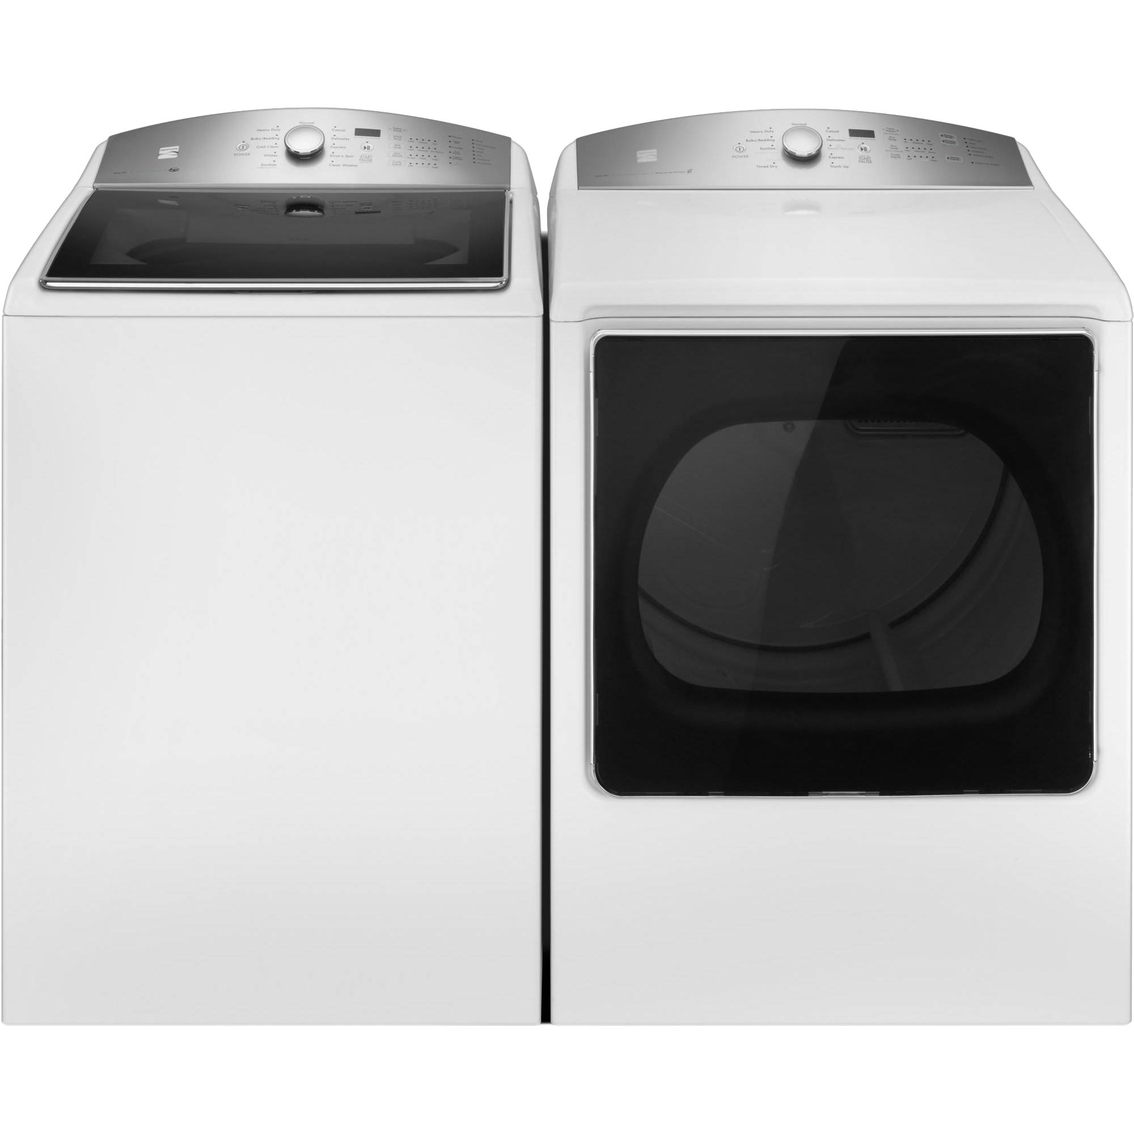 Kenmore 5 3 Cu Ft Top Load Washer 8 8 Cu Ft Electric